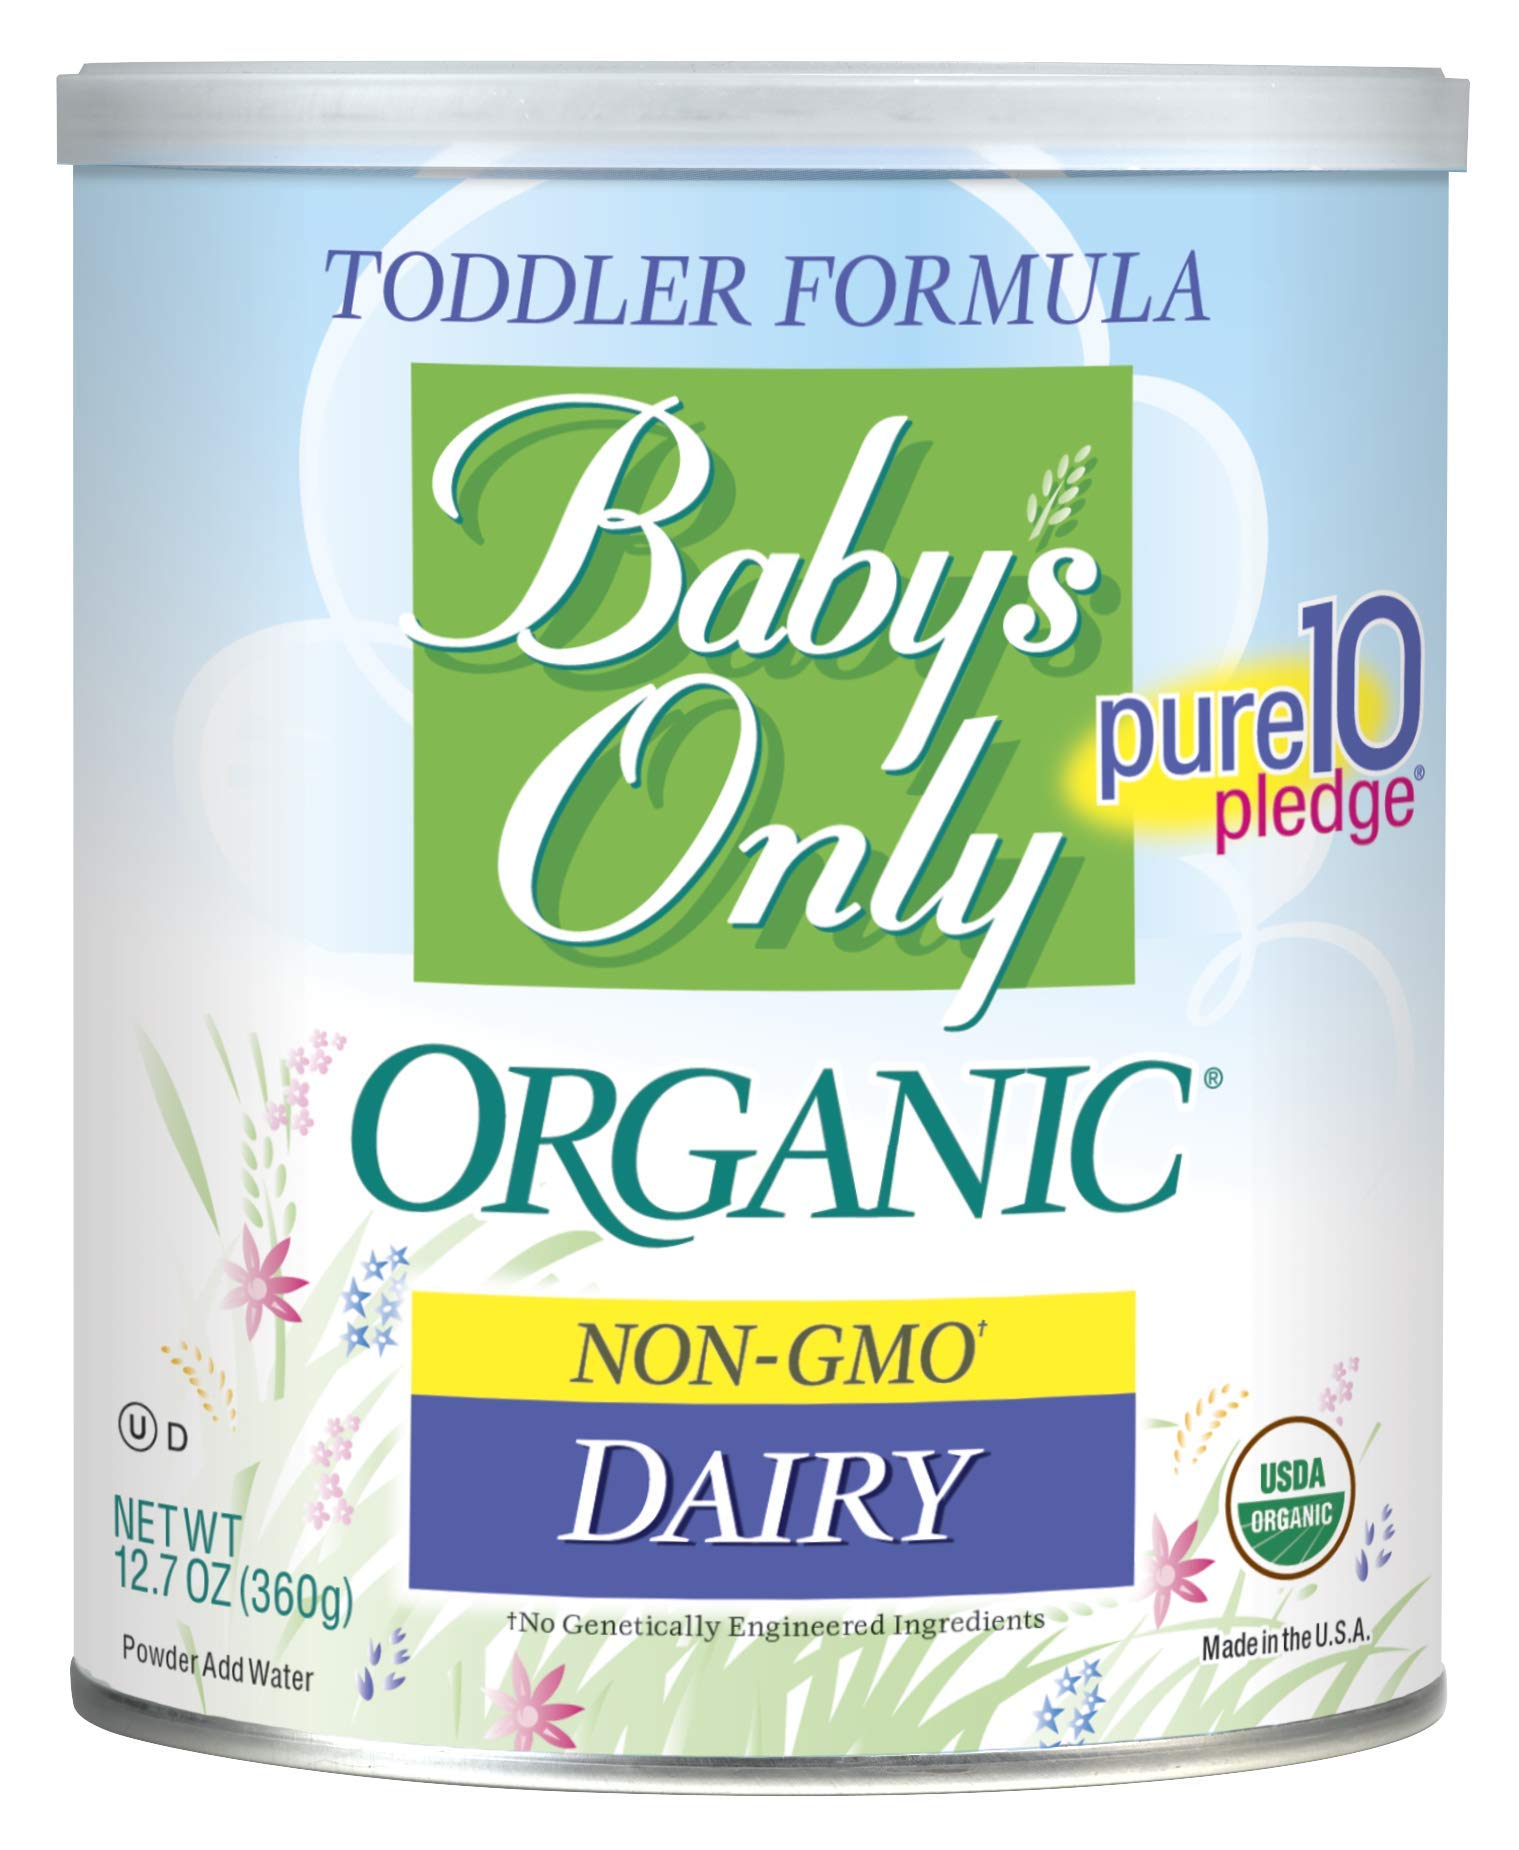 Baby's Only Organic Dairy Toddler Formula, 12.7 Oz (Pack of 6)   Non GMO   USDA Organic   Clean Label Project Verified